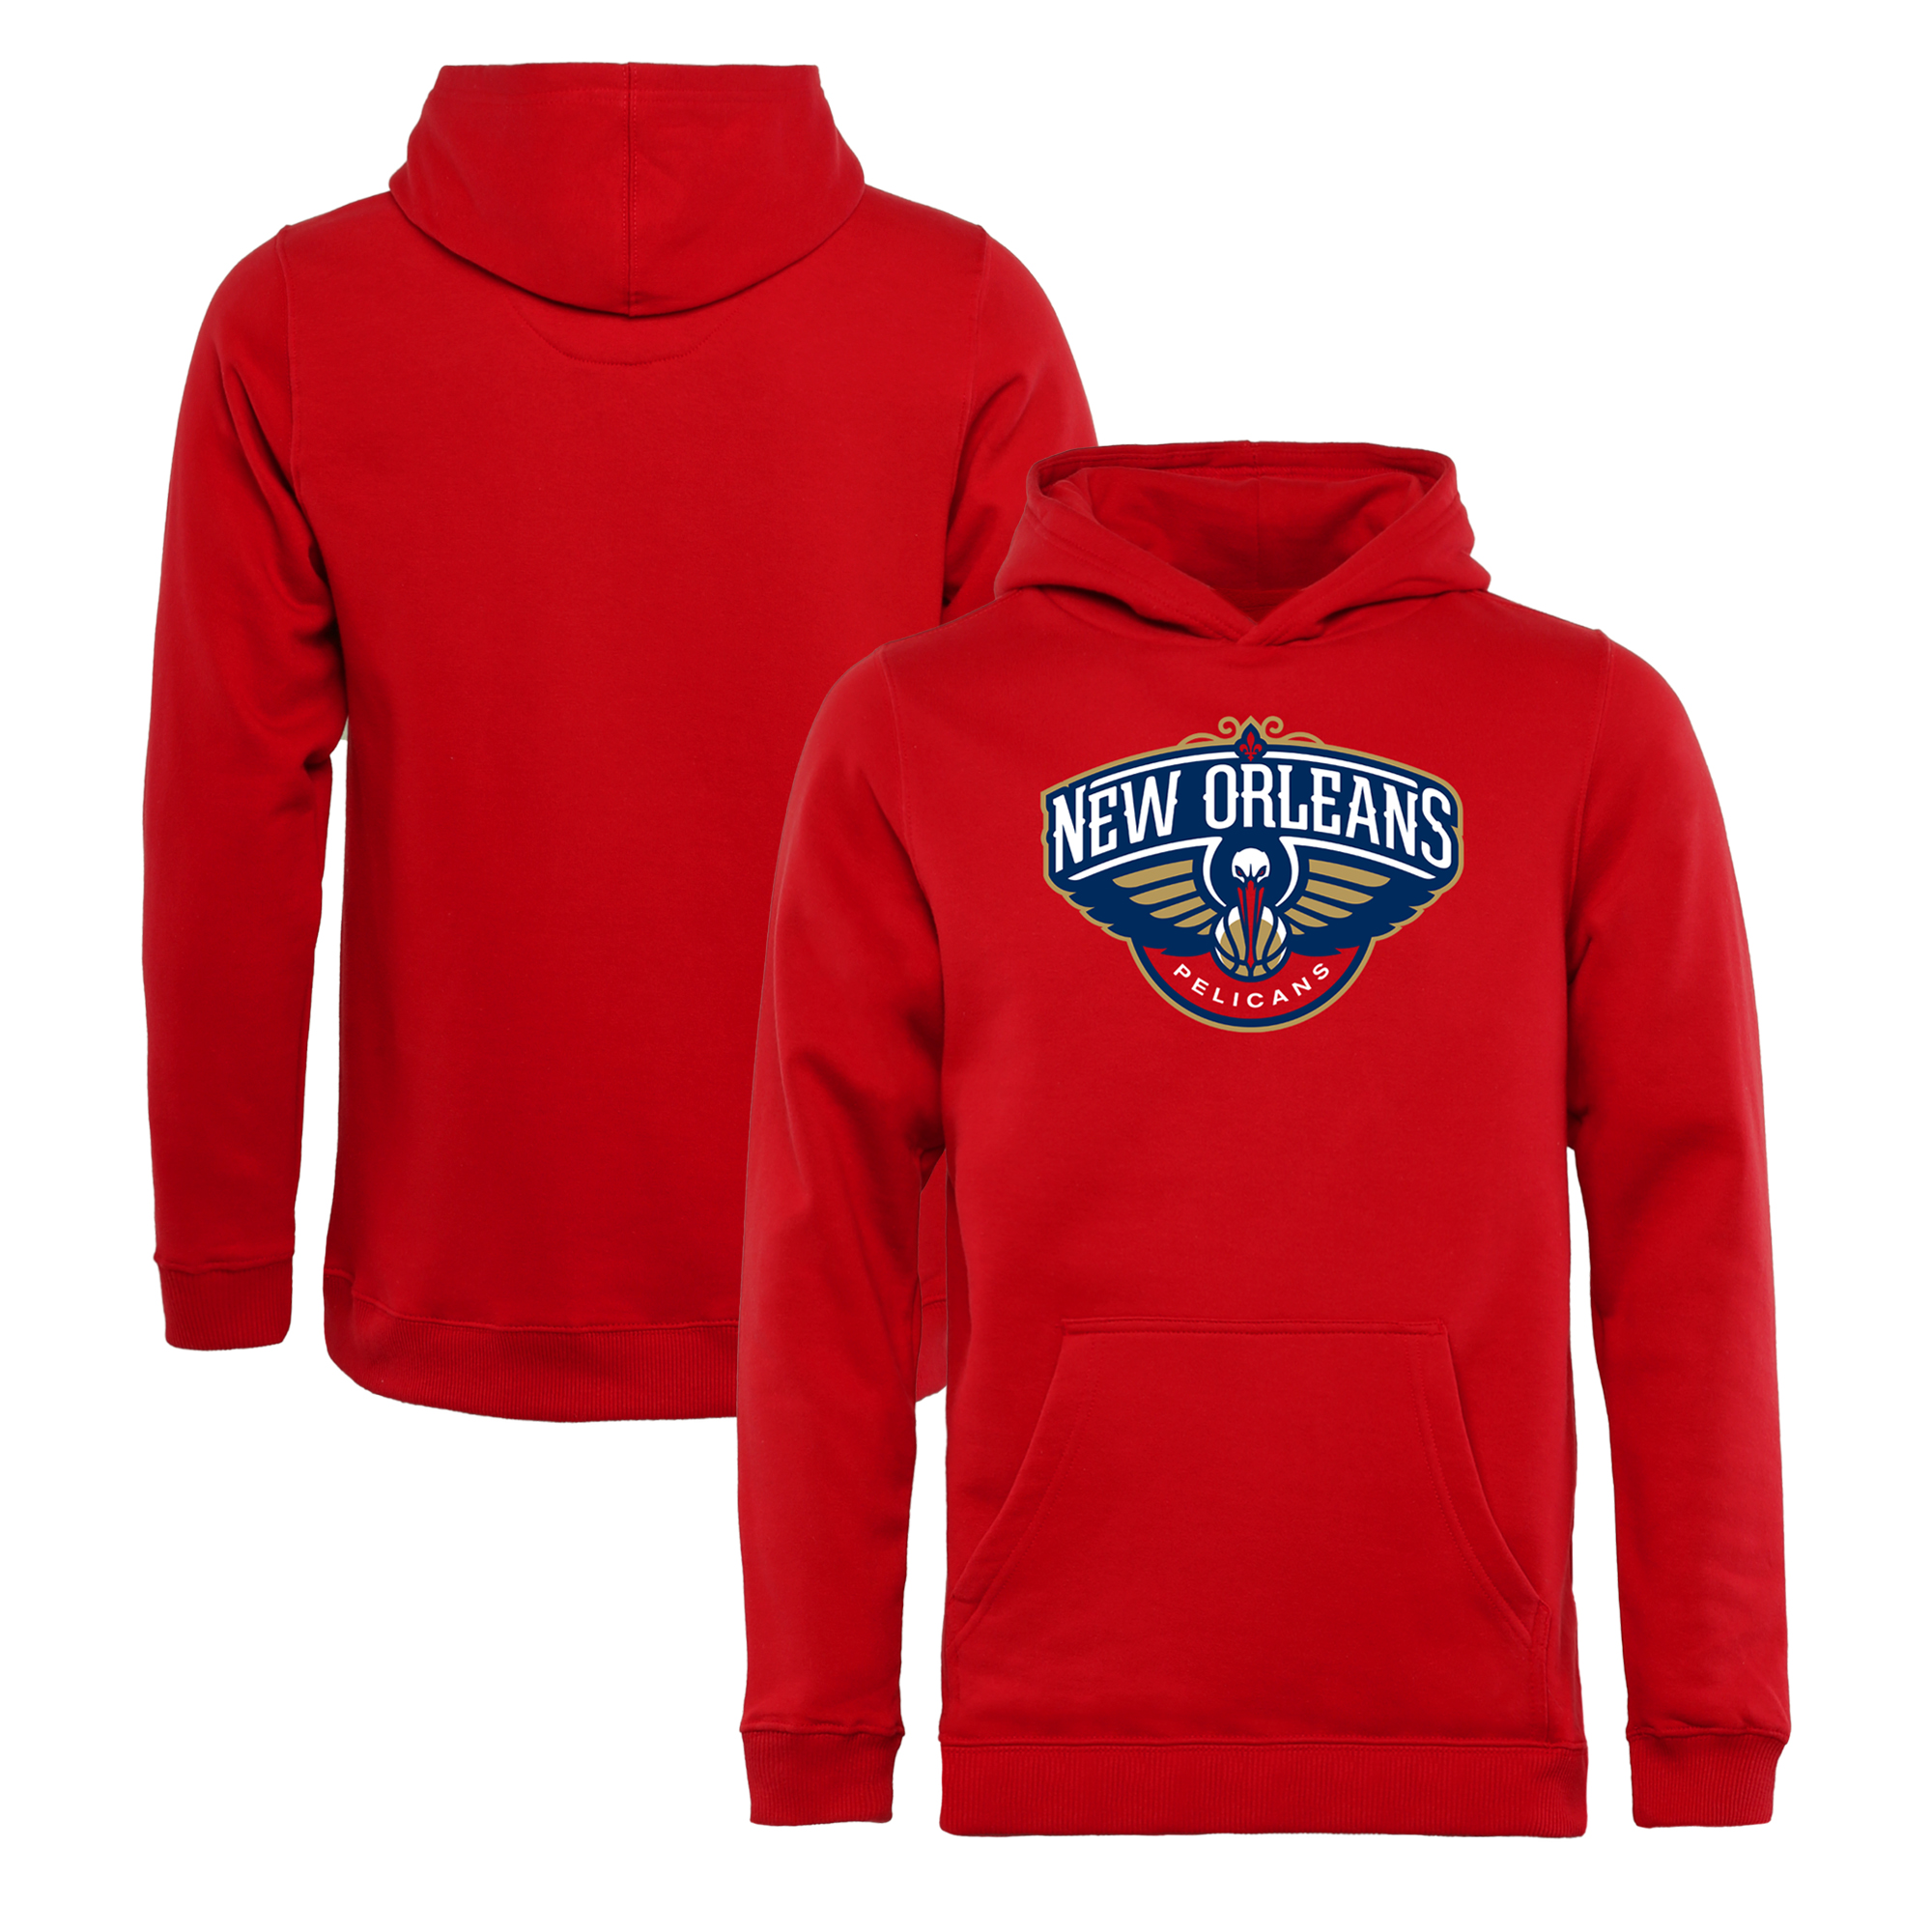 New Orleans Pelicans Fanatics Branded Youth Primary Logo Pullover Hoodie - Red